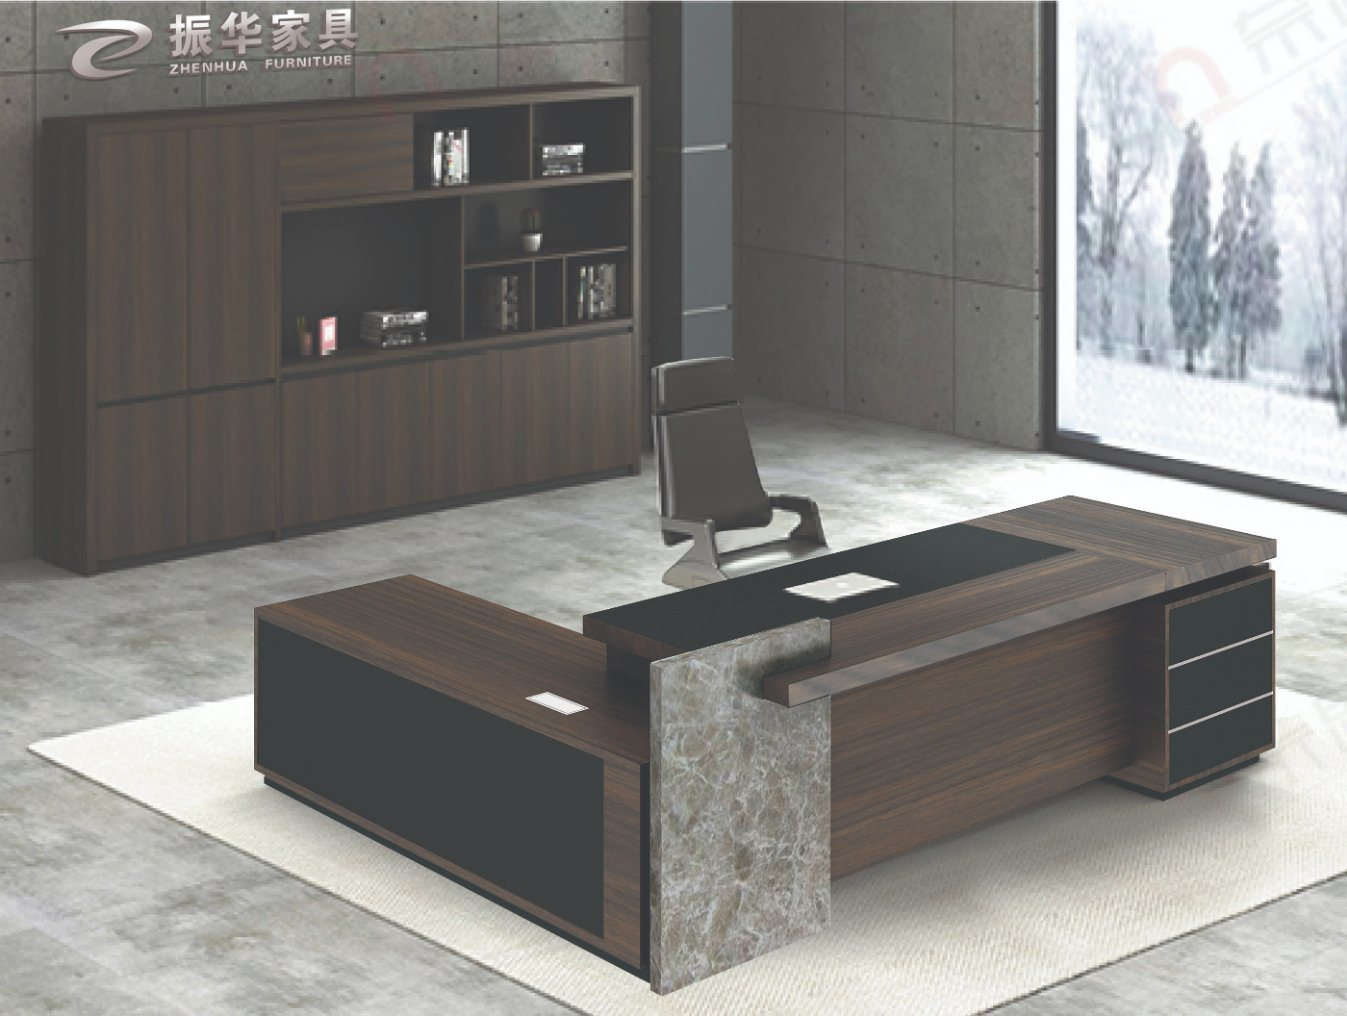 Image of: China New Style Modern Appearance General Use Office Furniture Sets Office Desk China Office Table Office Furniture